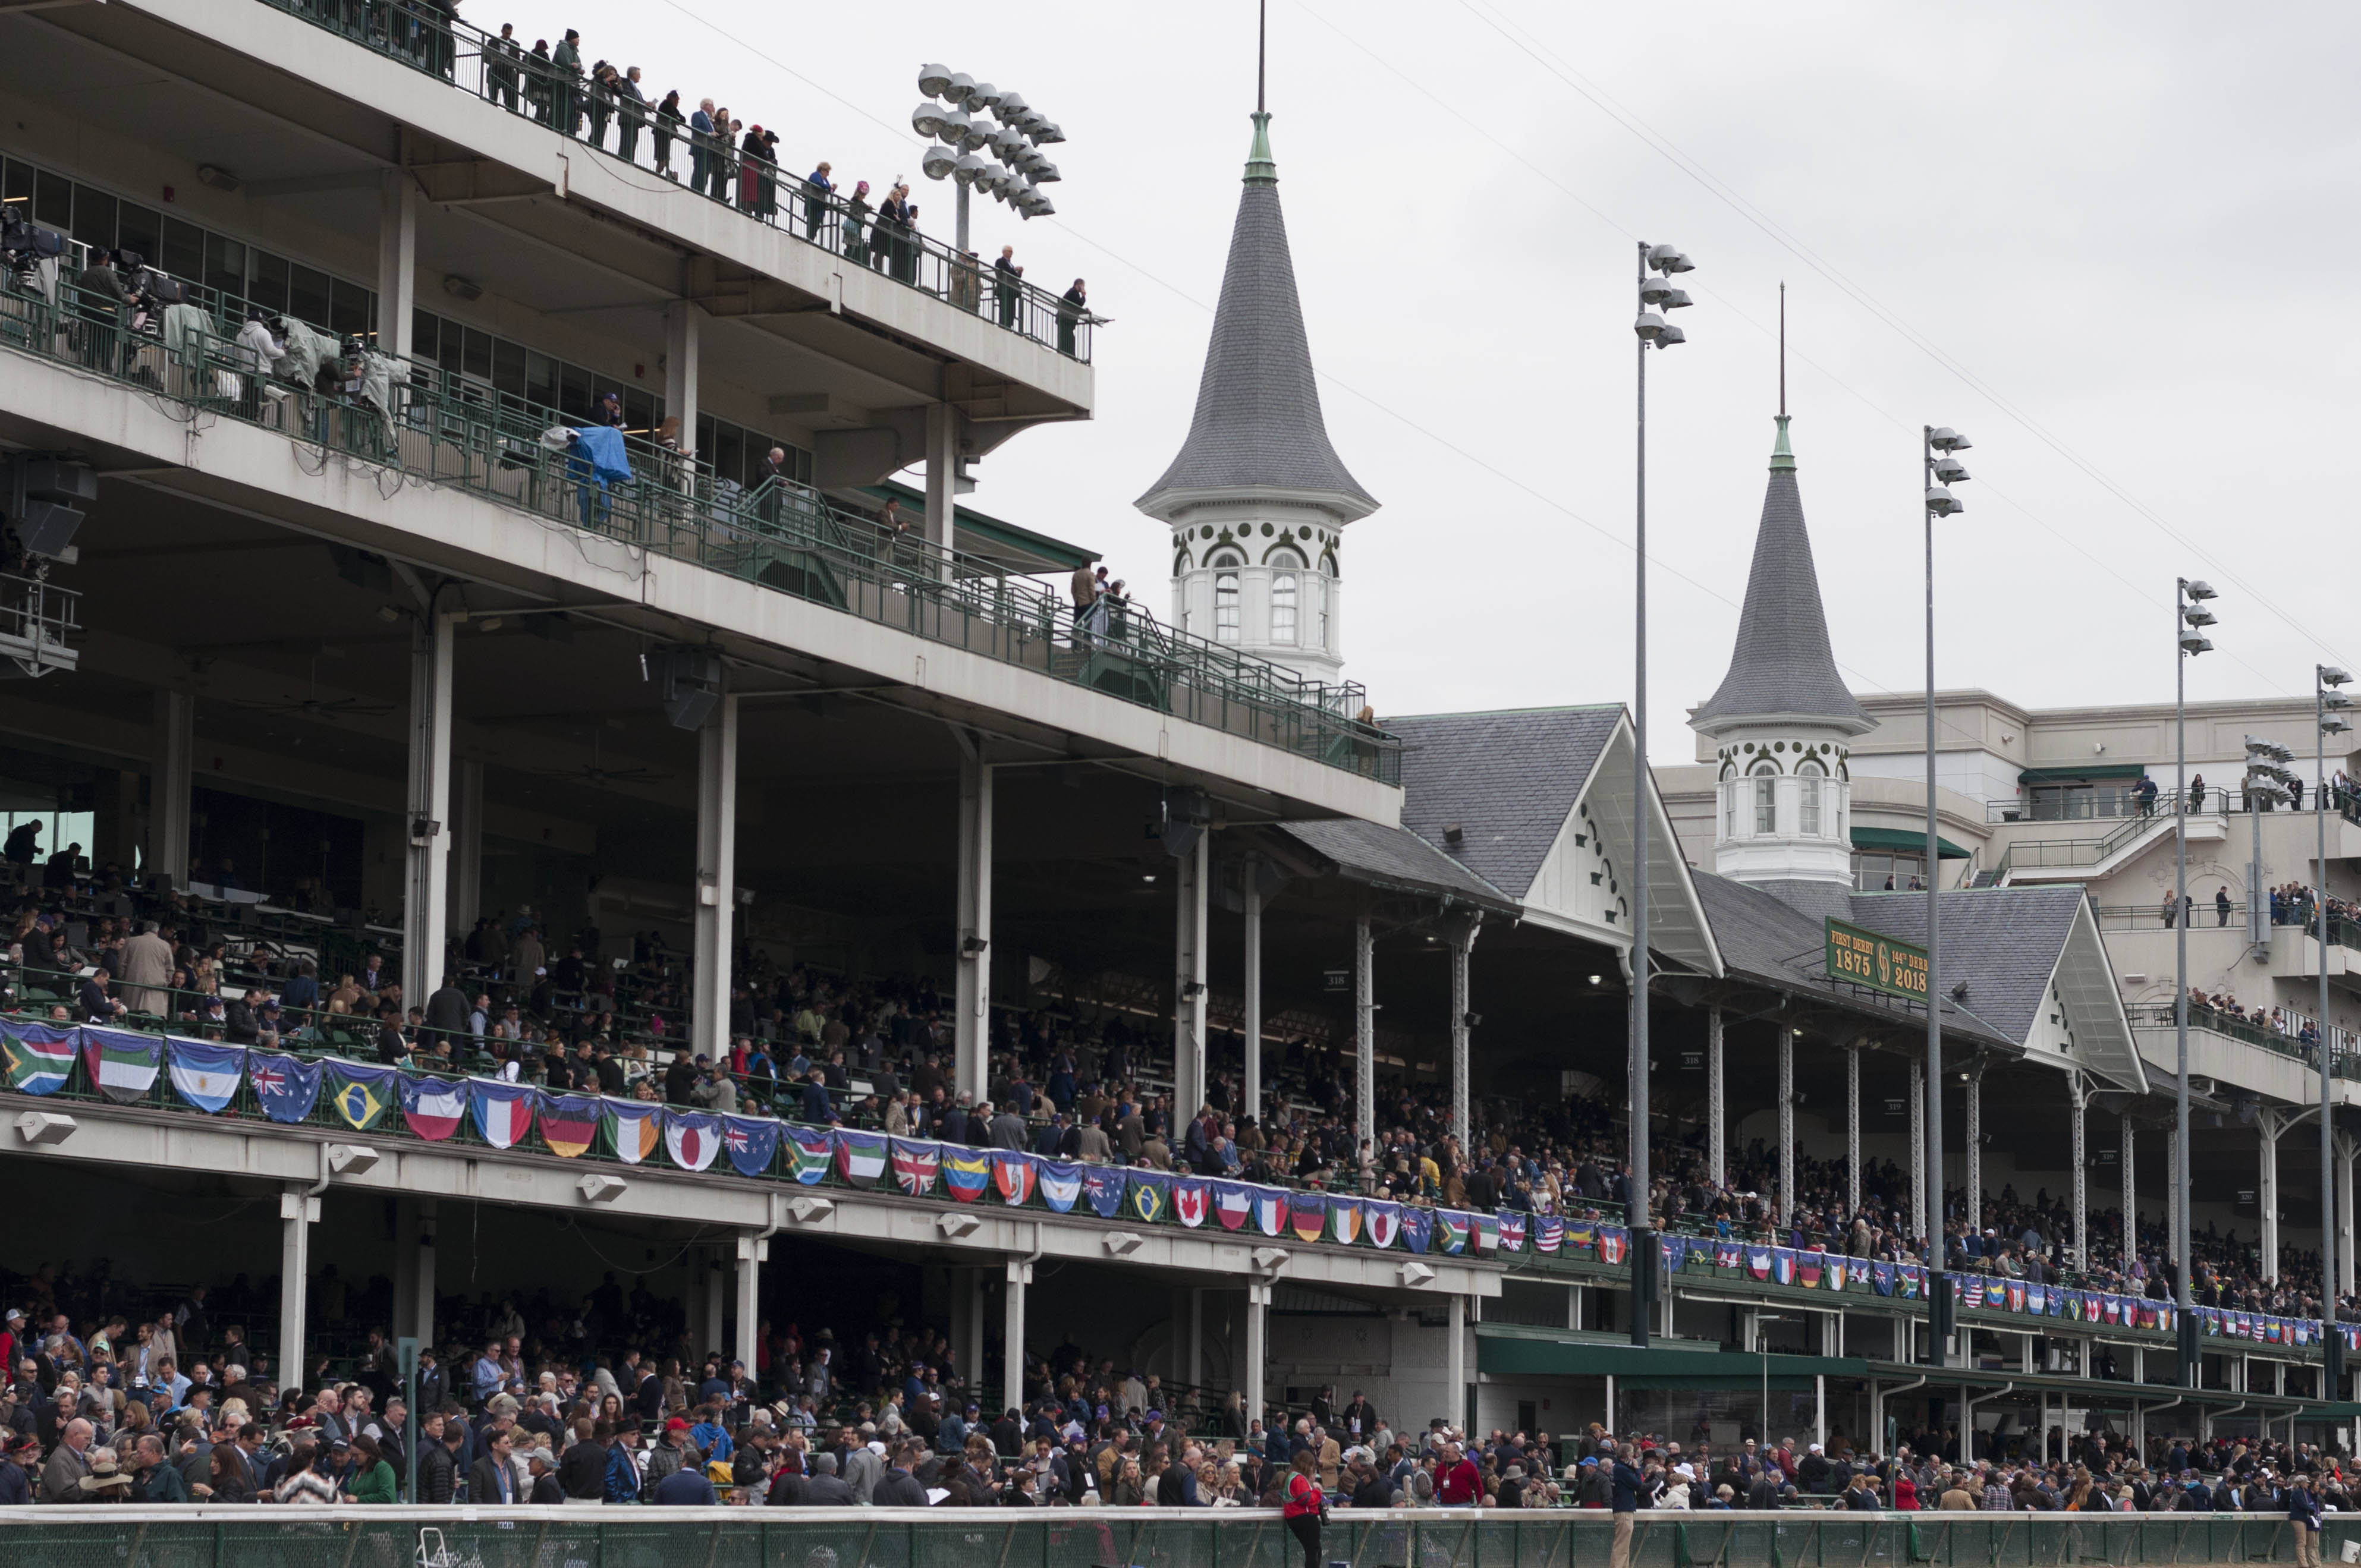 churhill downs with a large crowd